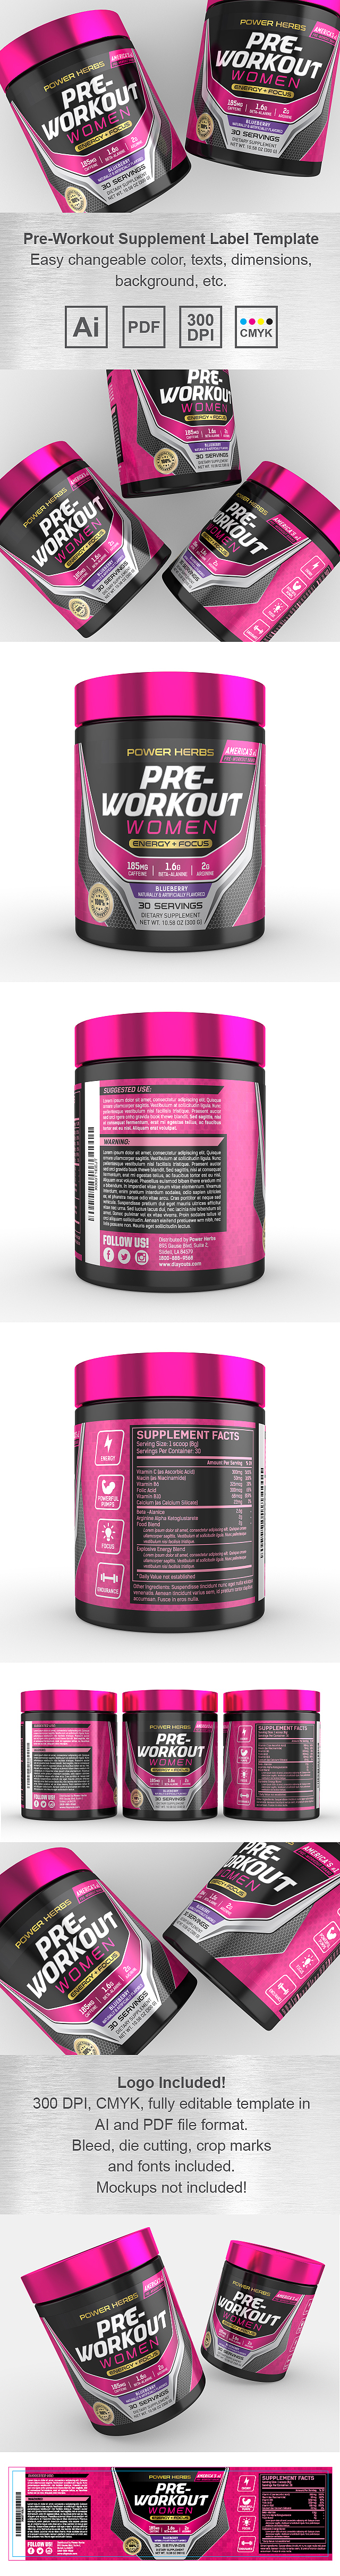 Pre Workout for Women Supplement Label Template